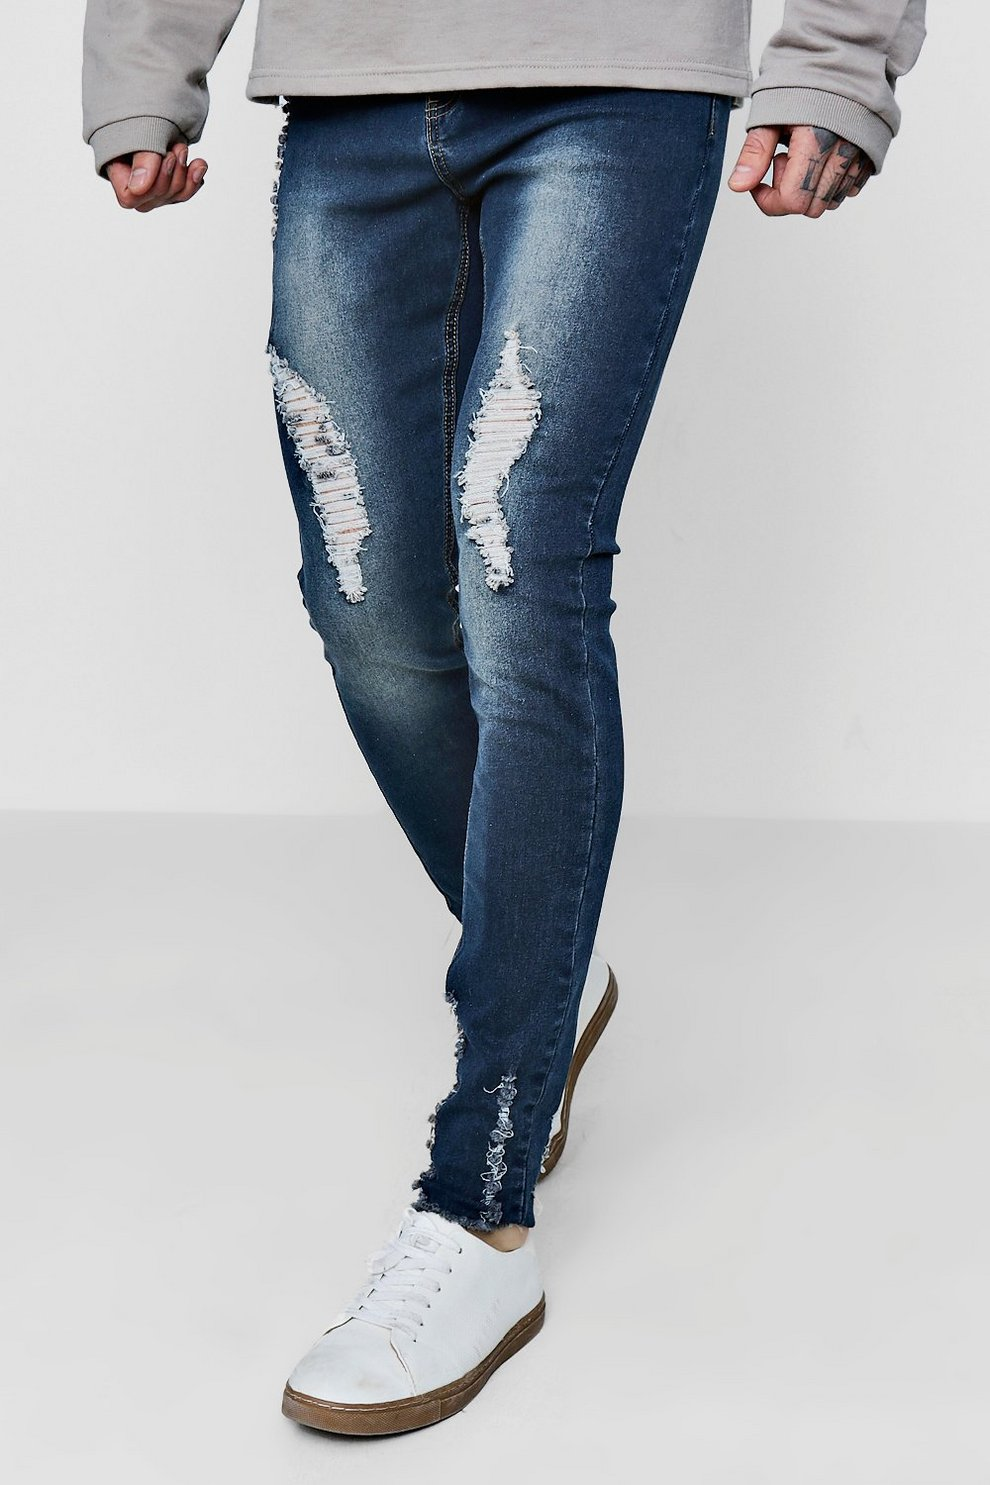 Boohoo Antique Wash Super Skinny Jeans with Raw Hem Discount Eastbay EBk9a6j